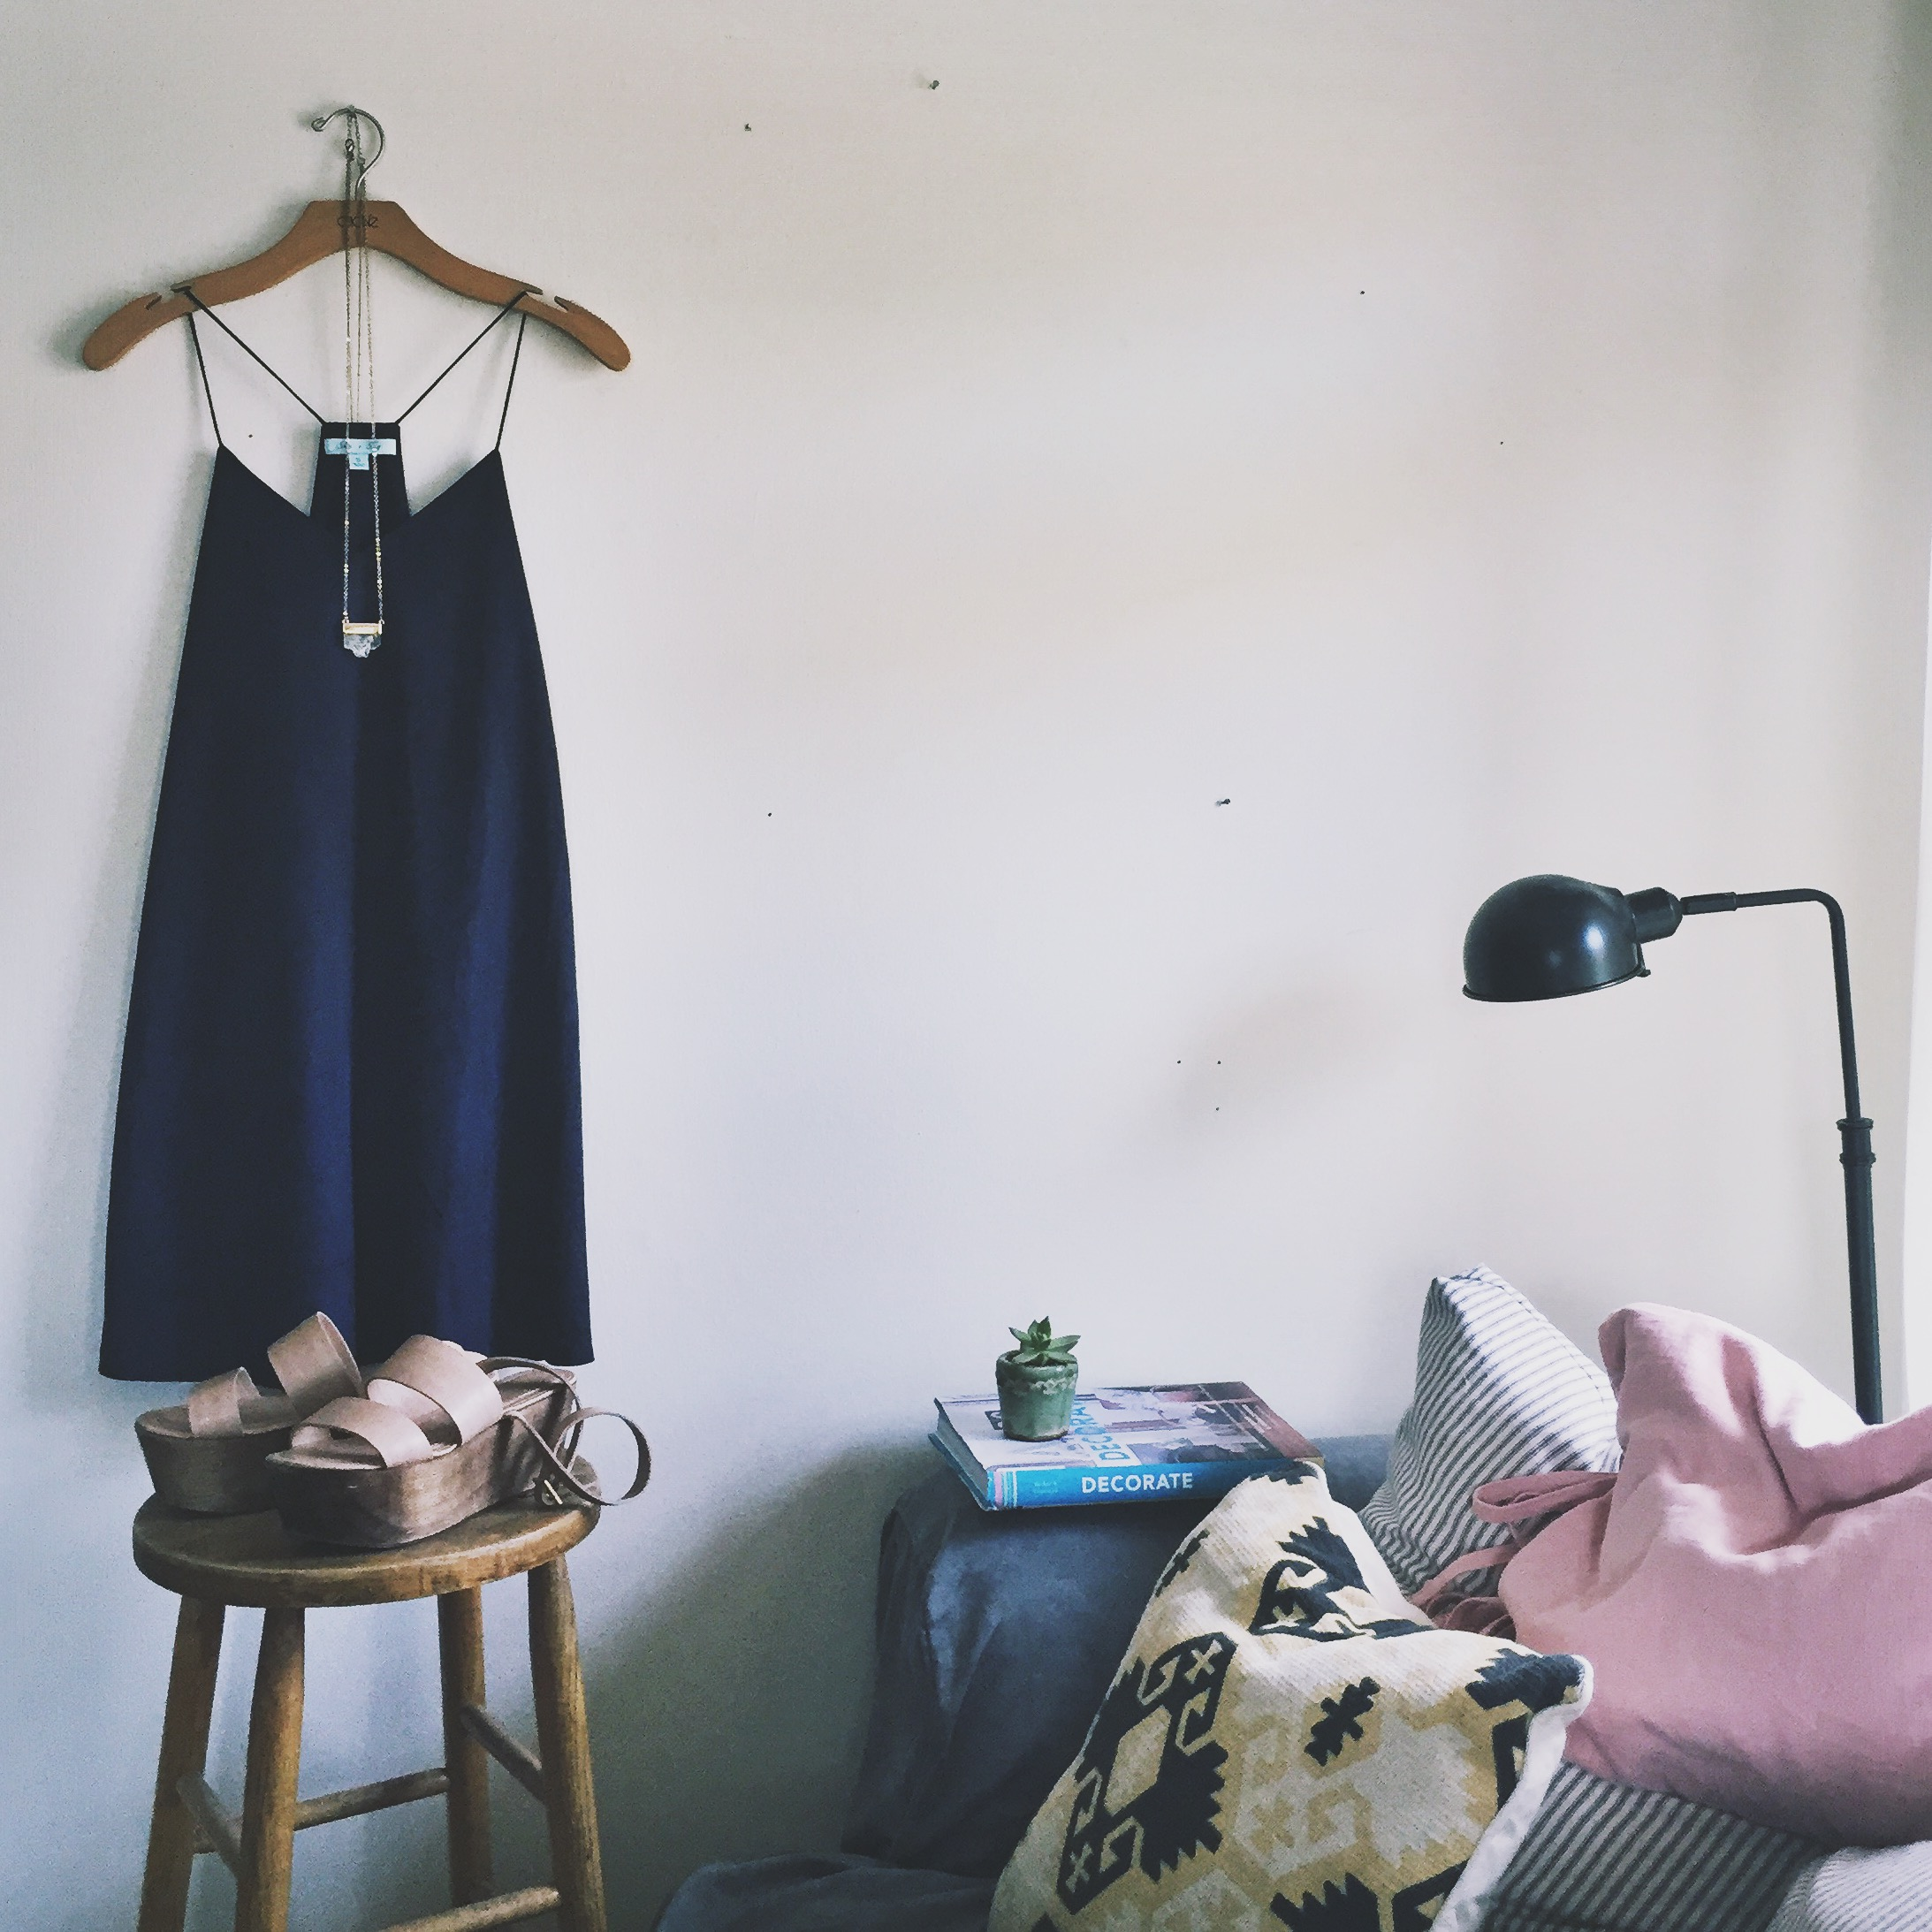 fancy dress, navy suede, platform clogs, thrift store finds, accessories, fashion, outfits, photography, memphis photography, christen jones, photography, neutrals, what to wear